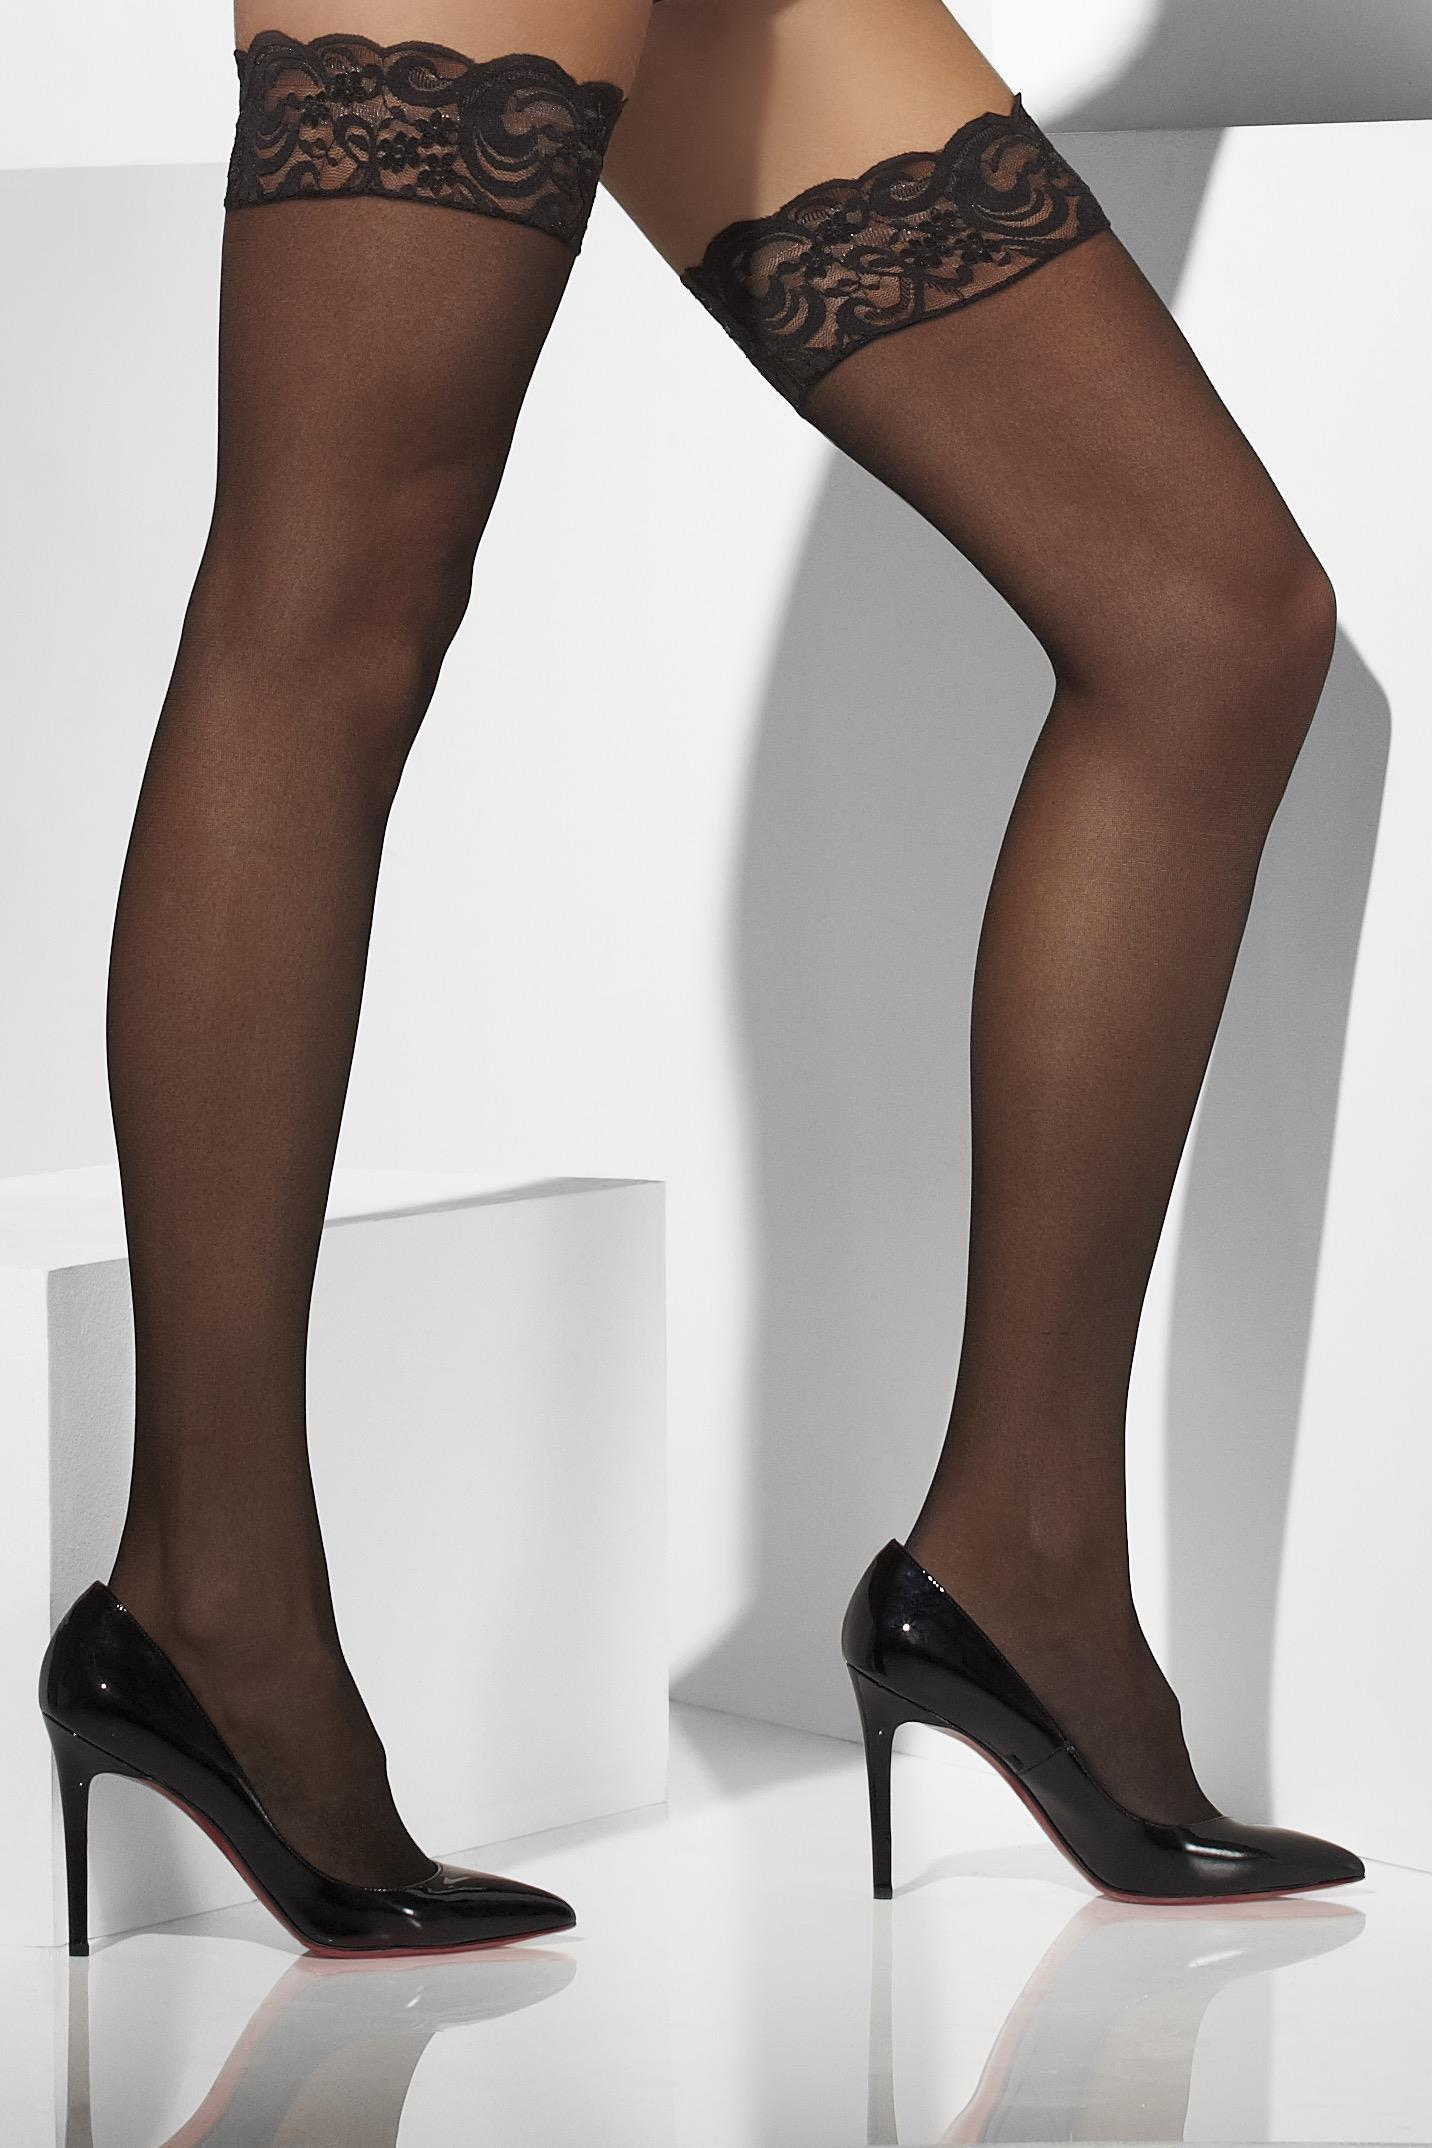 Sheer Hold-Ups Black Lace Top